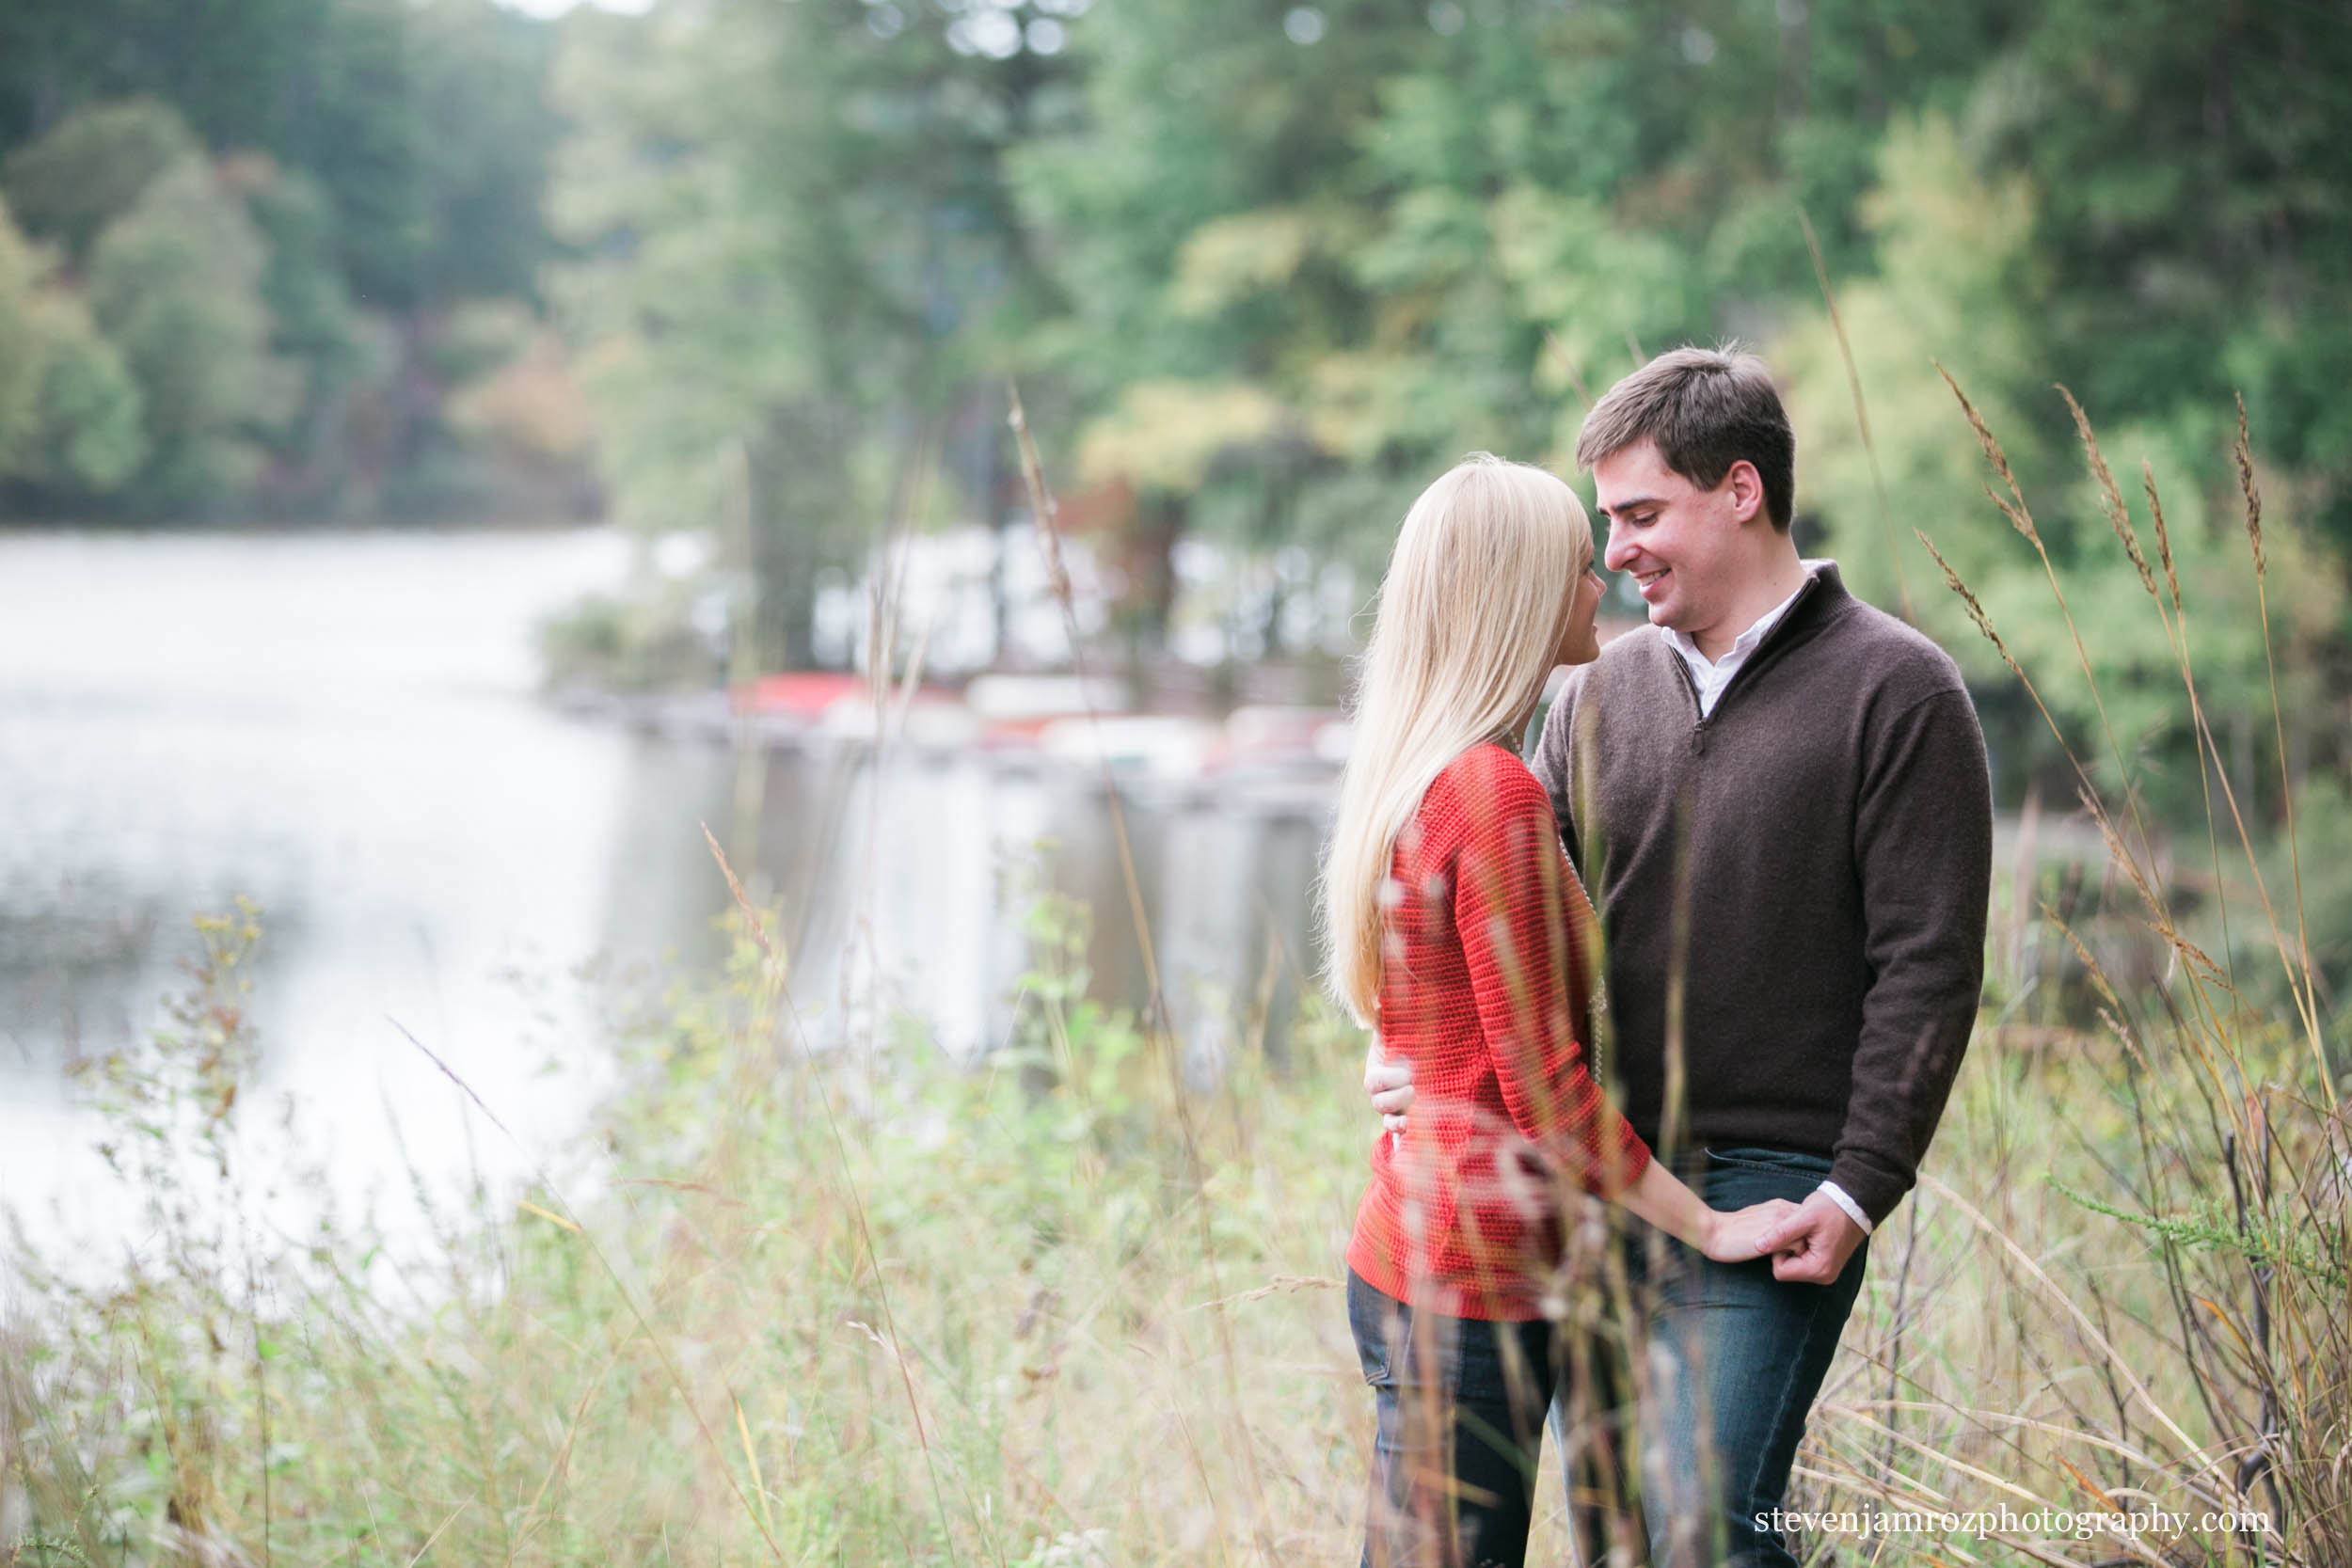 umstead-park-engagement-photos-natural-relaxed-steven-jamroz.jpg